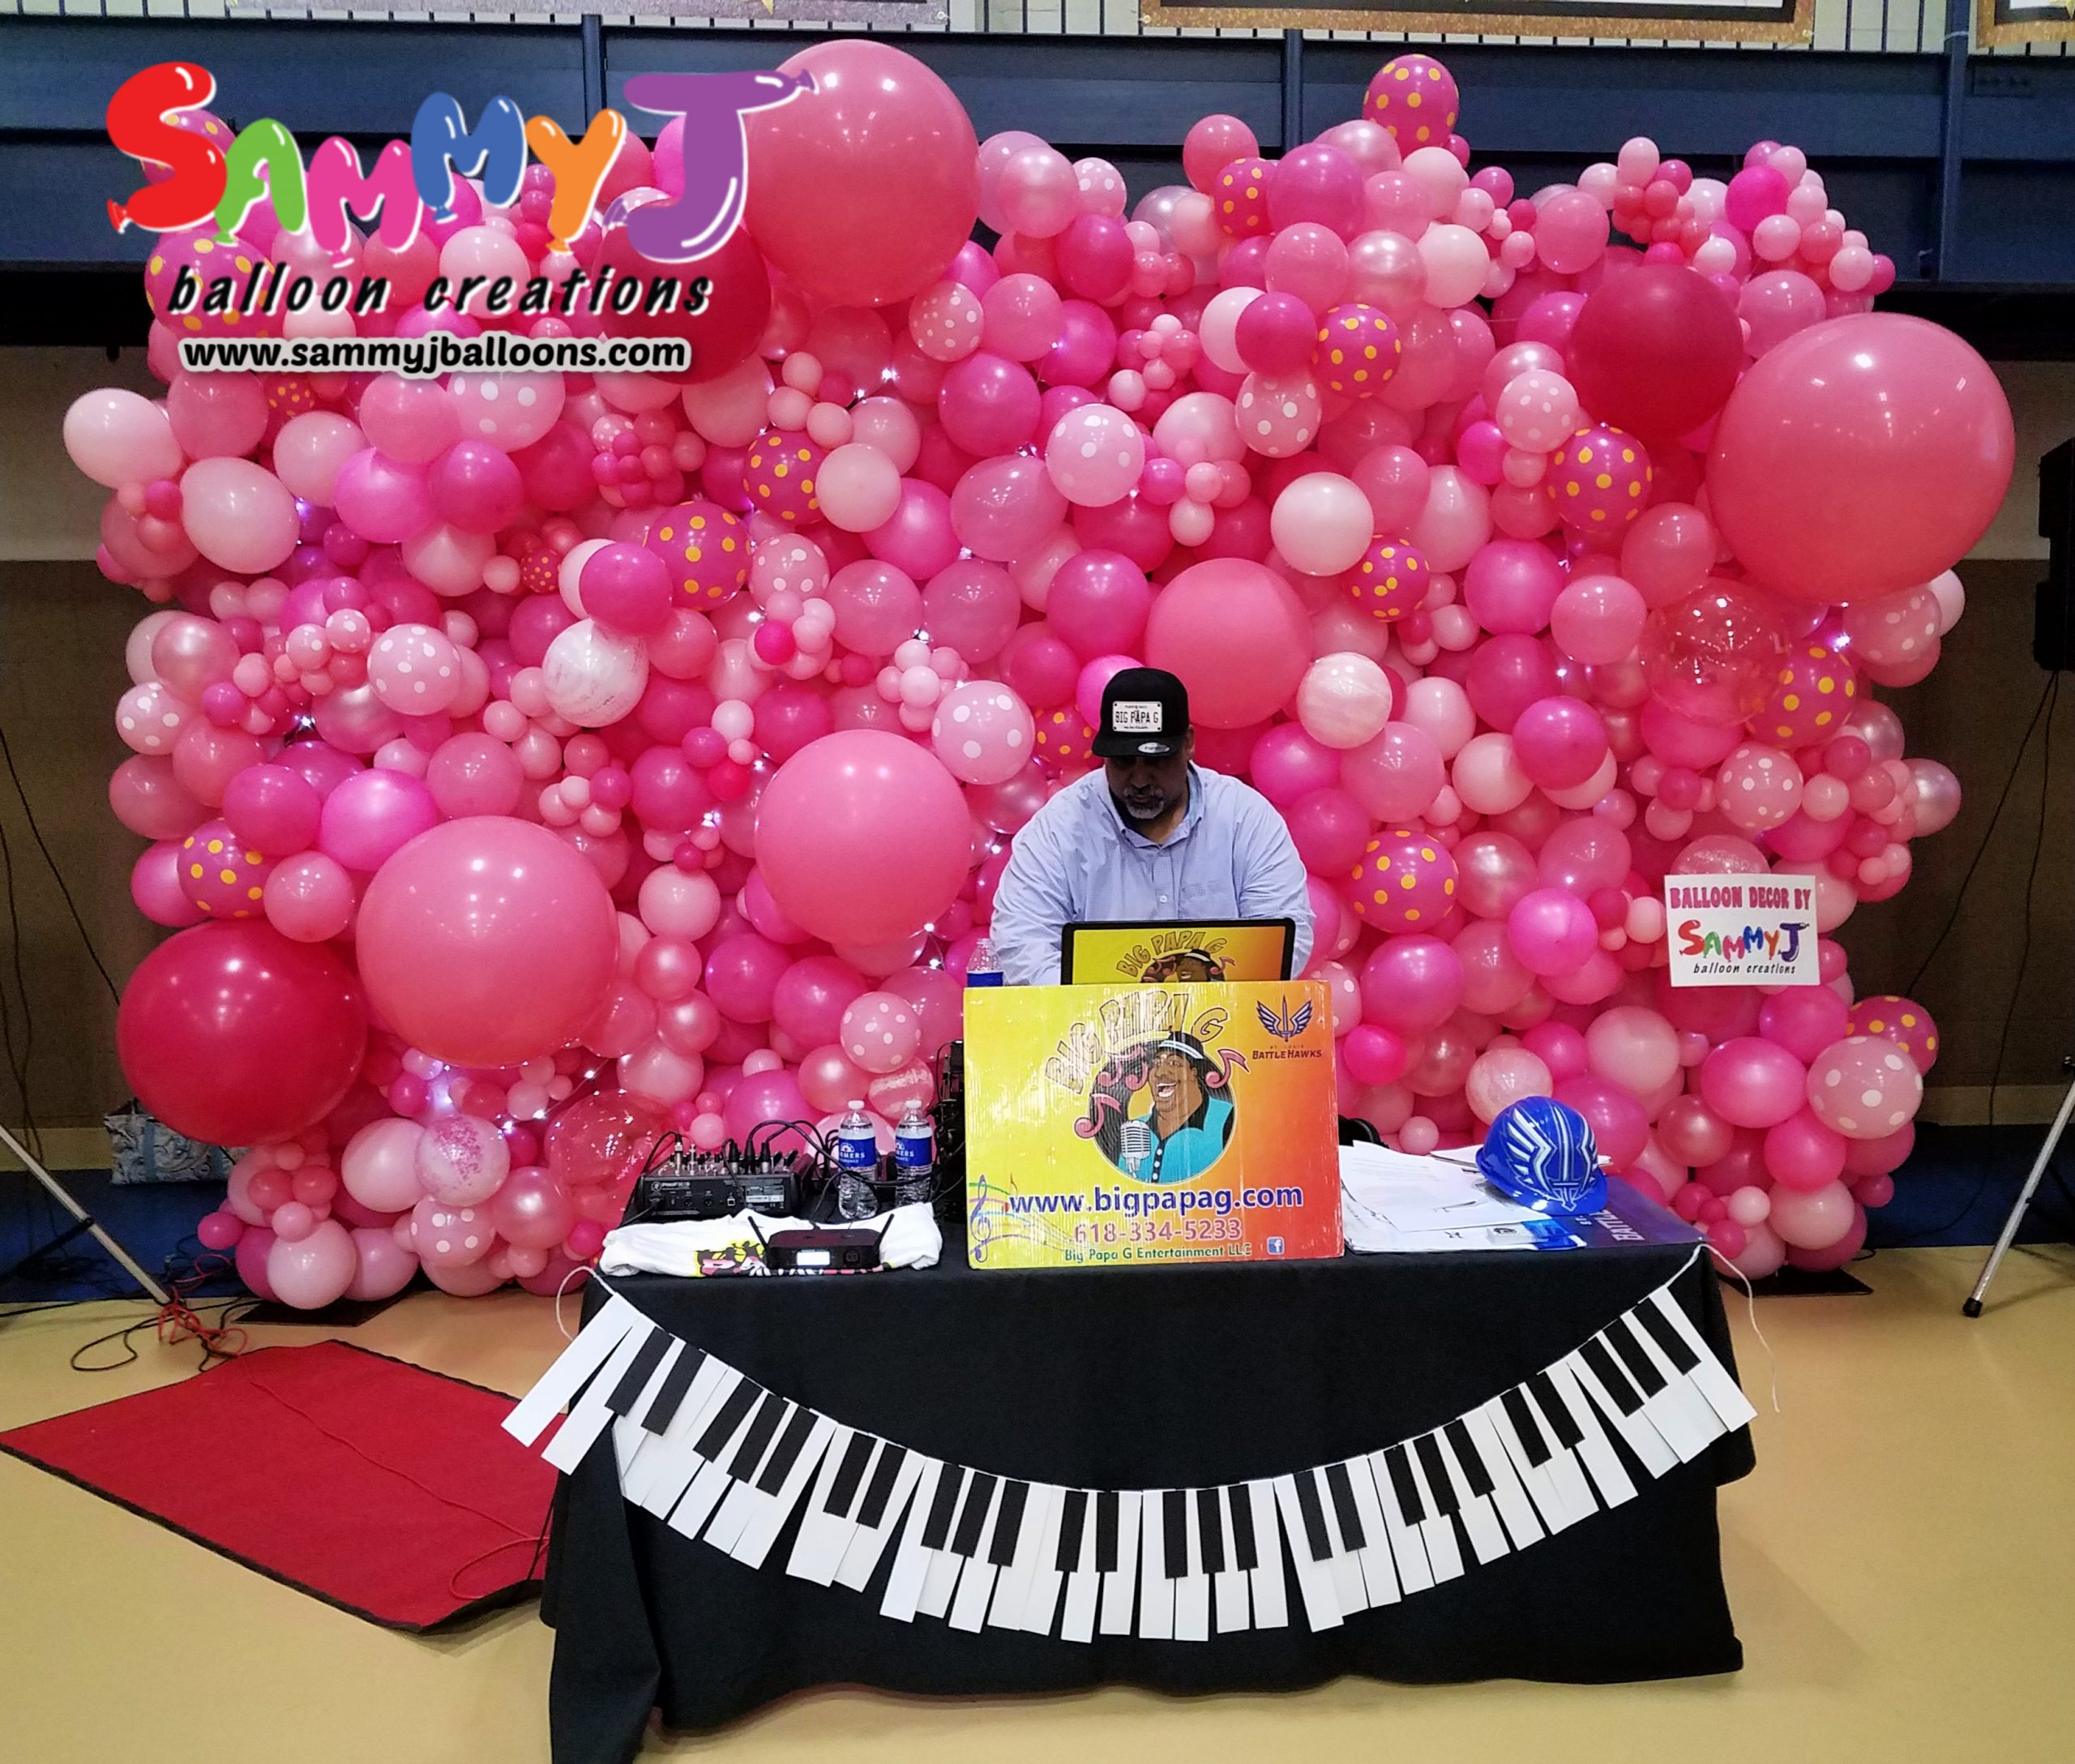 SAMMY J Balloon Creations st louis balloons organic pink wall backdrop